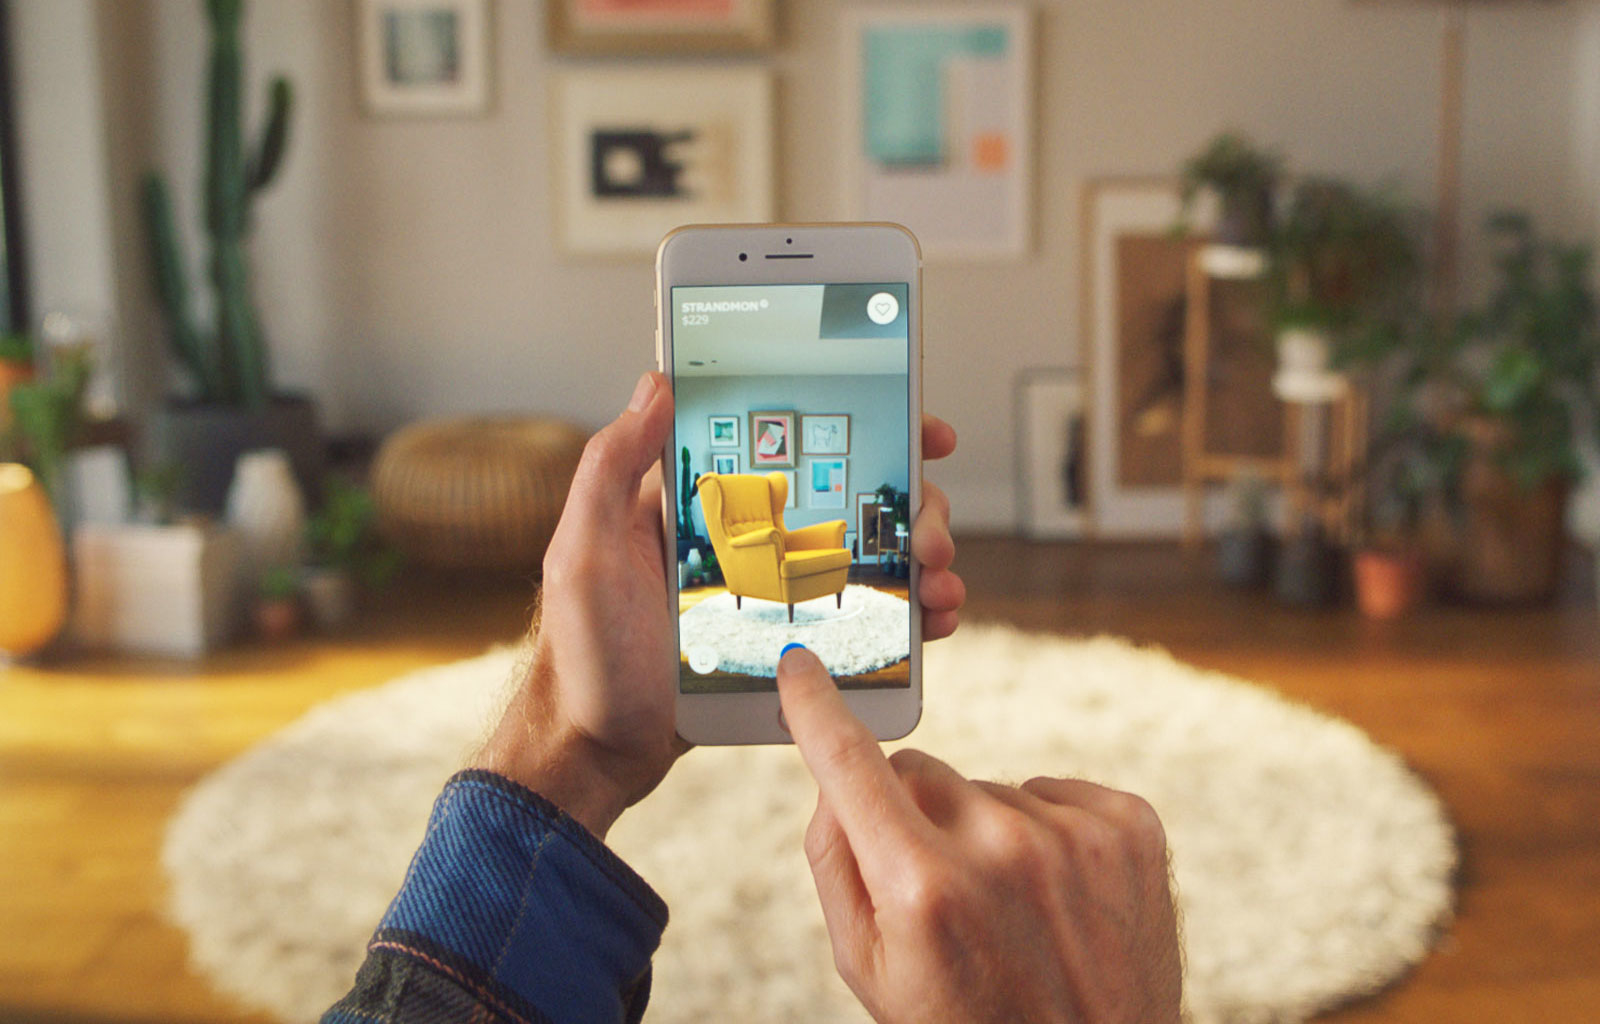 Plan The Living Room of Your Dreams W/ These Interior Design Apps interior design apps Plan The Living Room of Your Dreams W/ These Interior Design Apps The Best Interior Design Apps for Every Decor Lover and Professional 4